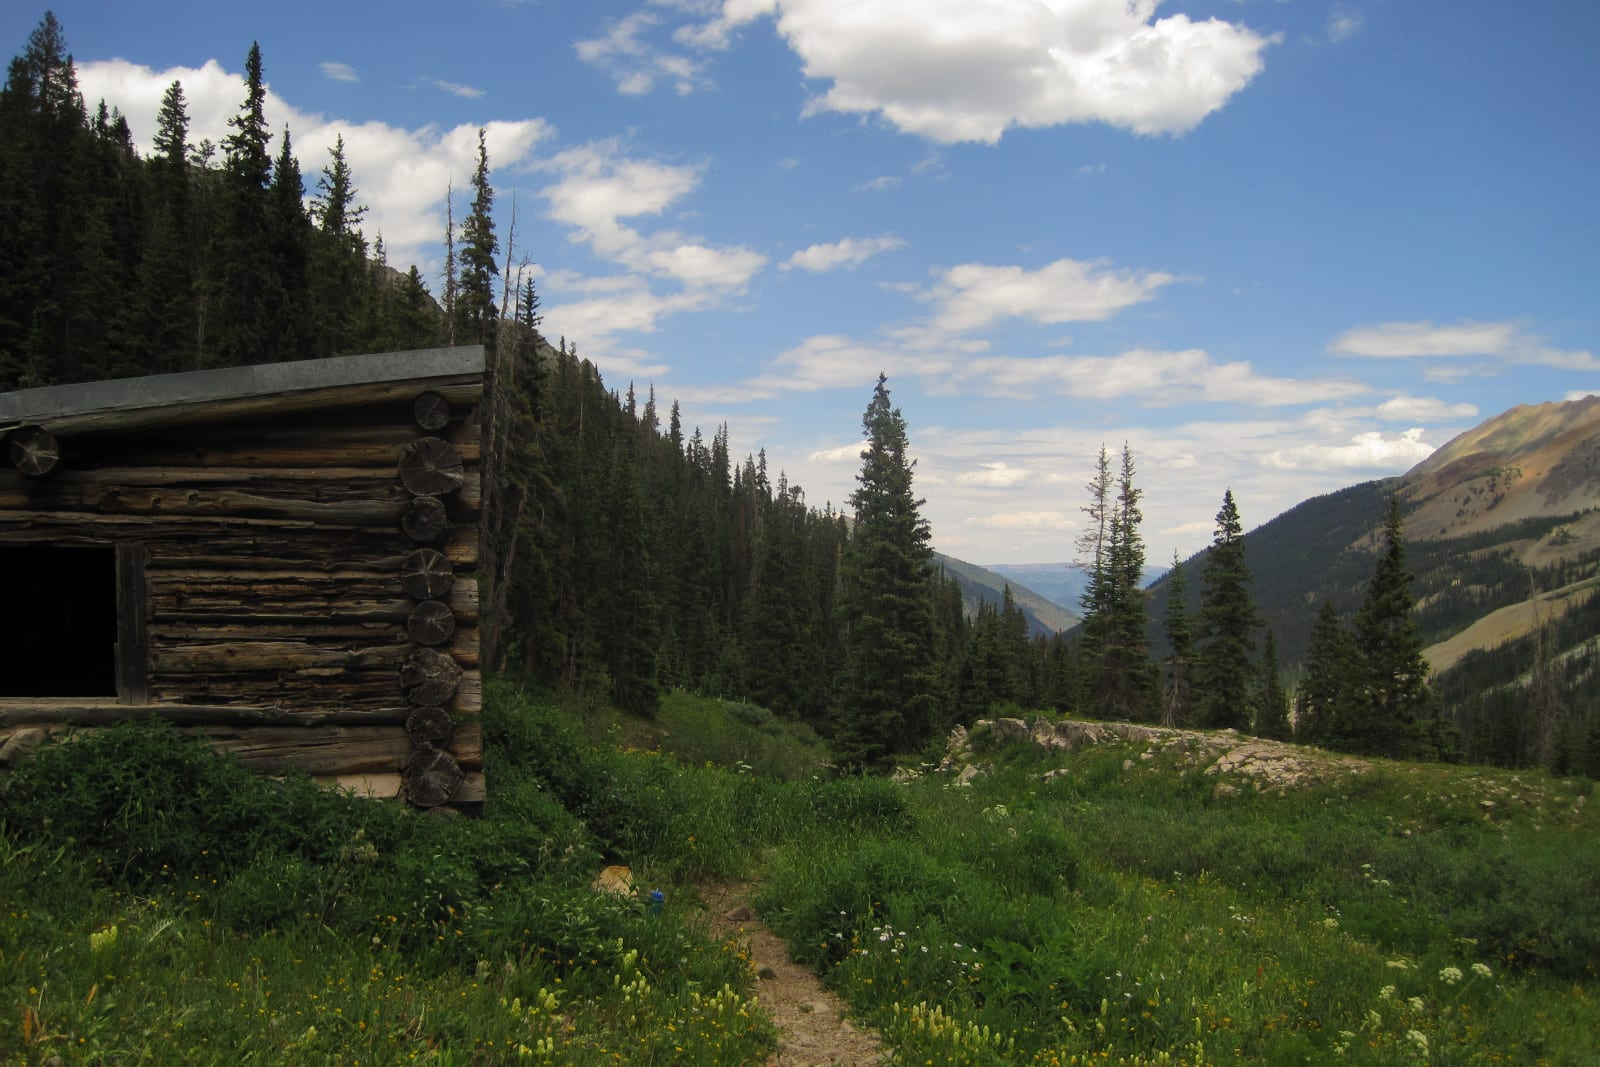 Camping Colorado Hot Springs Conundrum Hiking Trail by Cabin